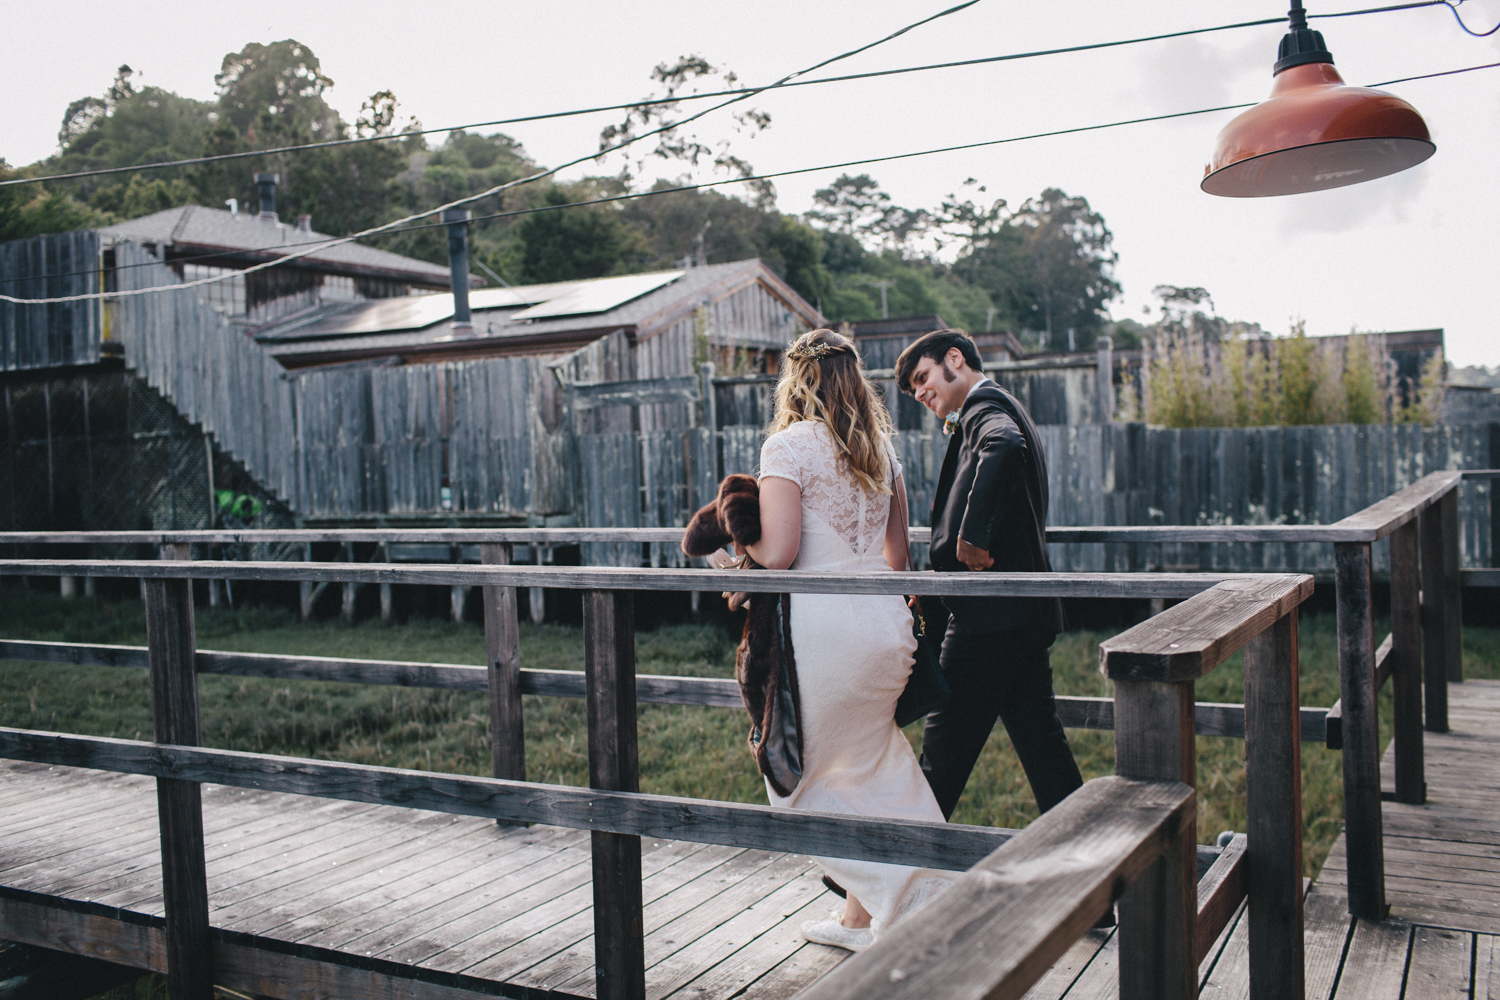 Point Reyes Inverness Wedding Photographer Rachelle Derouin-60.jpg